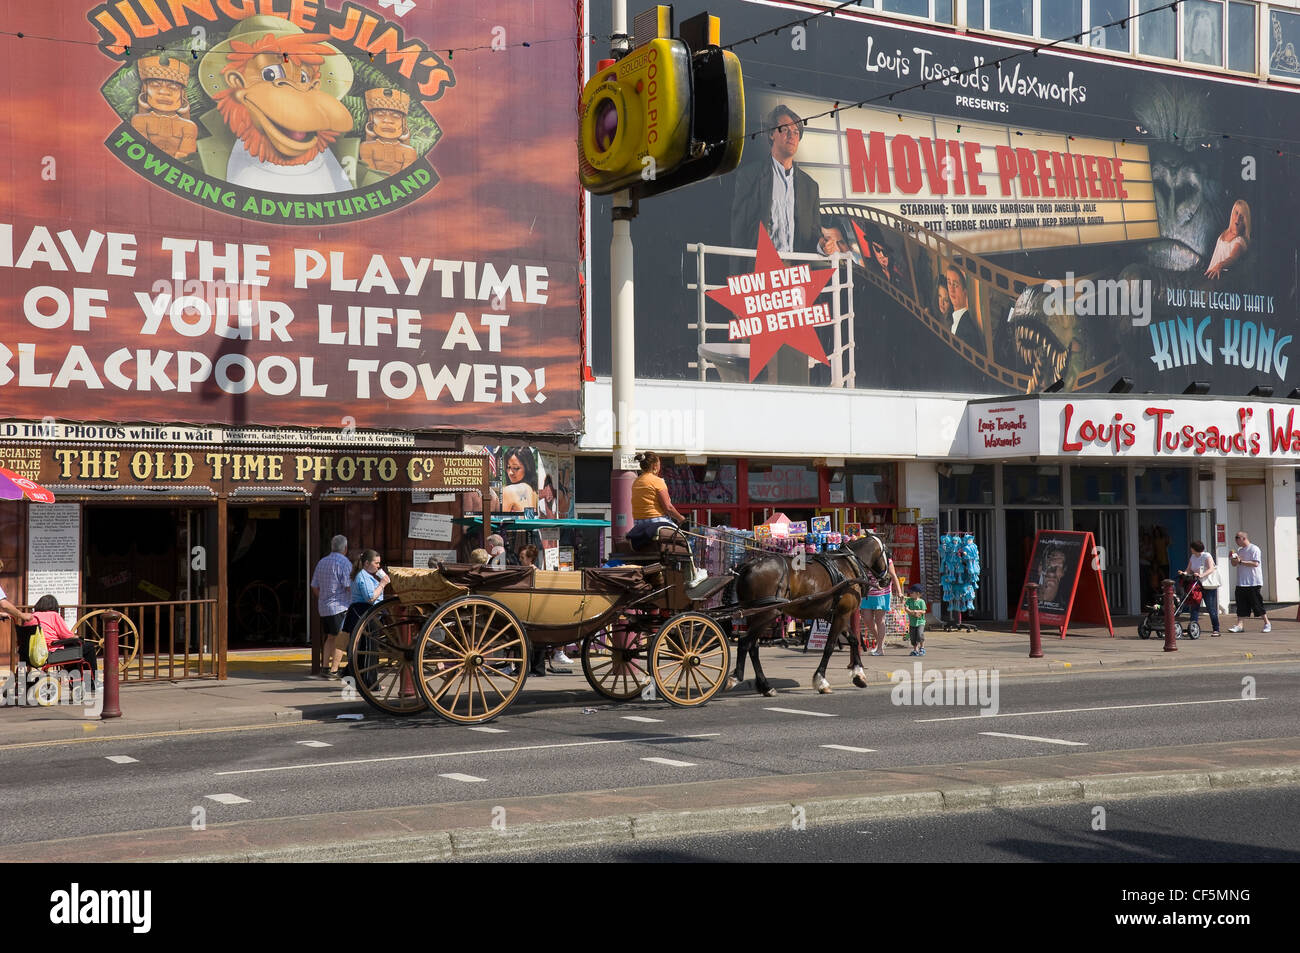 Horse and carriage outside Louis Tussaud's Waxworks on the Golden Mile in Blackpool. Stock Photo